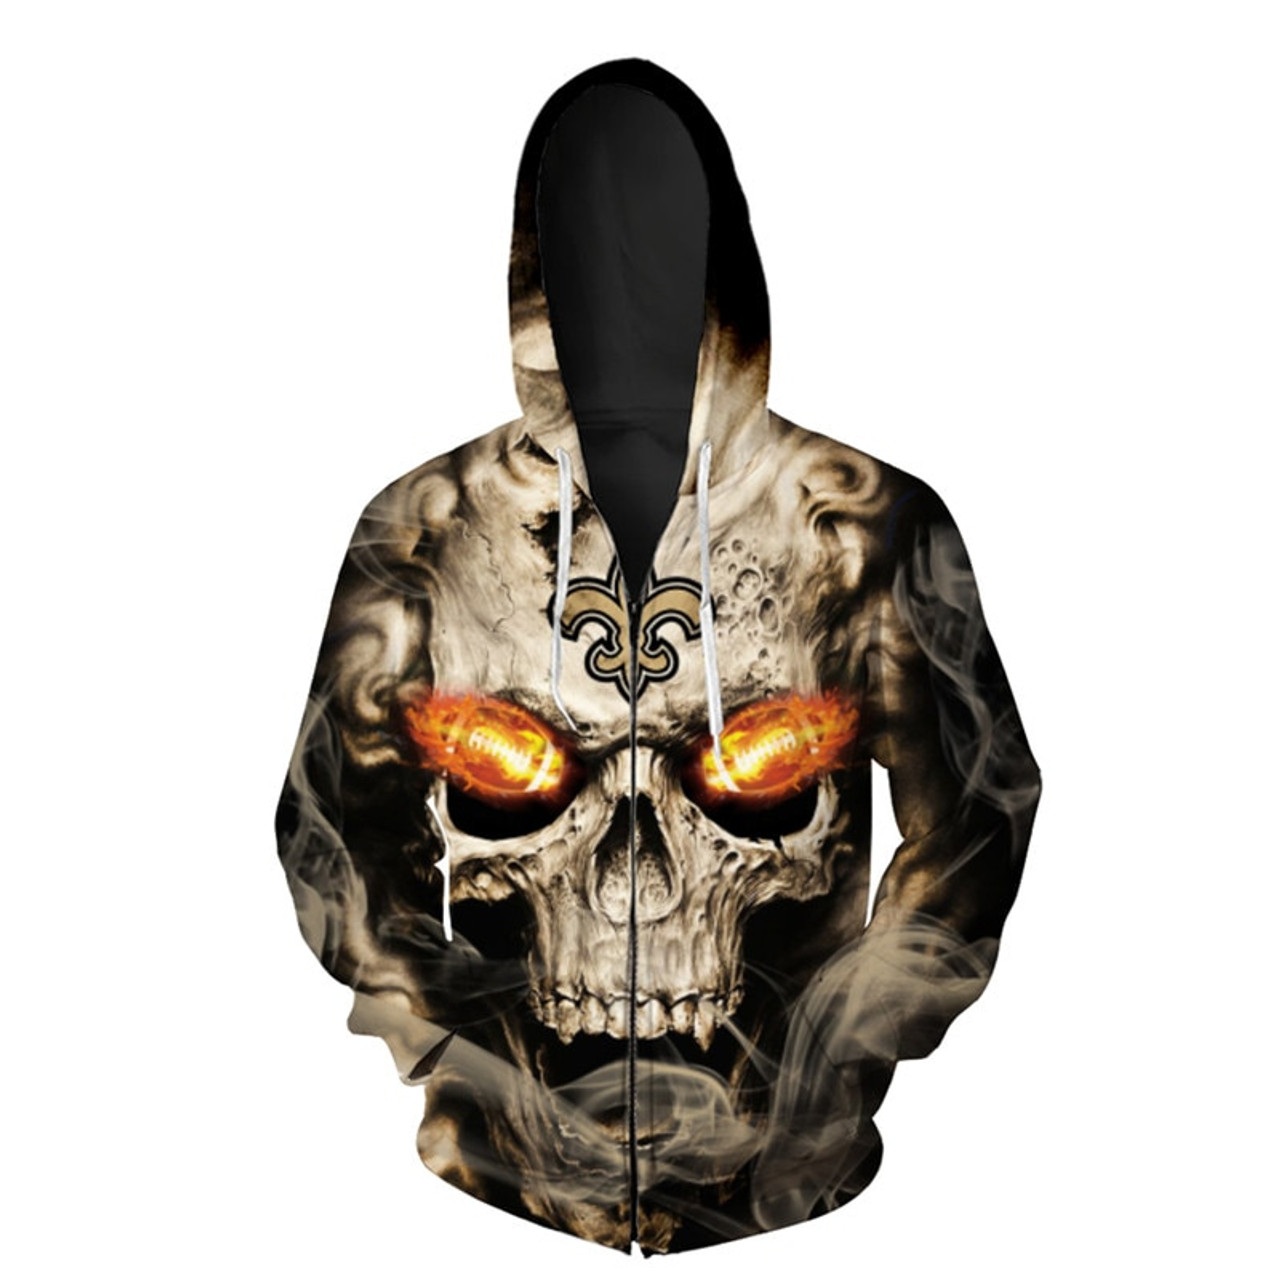 outlet store 3d6ad 34e08 **(OFFICIAL-N.F.L.NEW-ORLEANS-SAINTS-LOGO-ZIPPERED-HOODIES/3D-NEON-SKULL &  NEW-ORLEANS-SAINTS-BLAZING-FOOTBALL,ON-FIRE-IN-SKULLS-EYES,PREMIUM-3D-CUSTO...